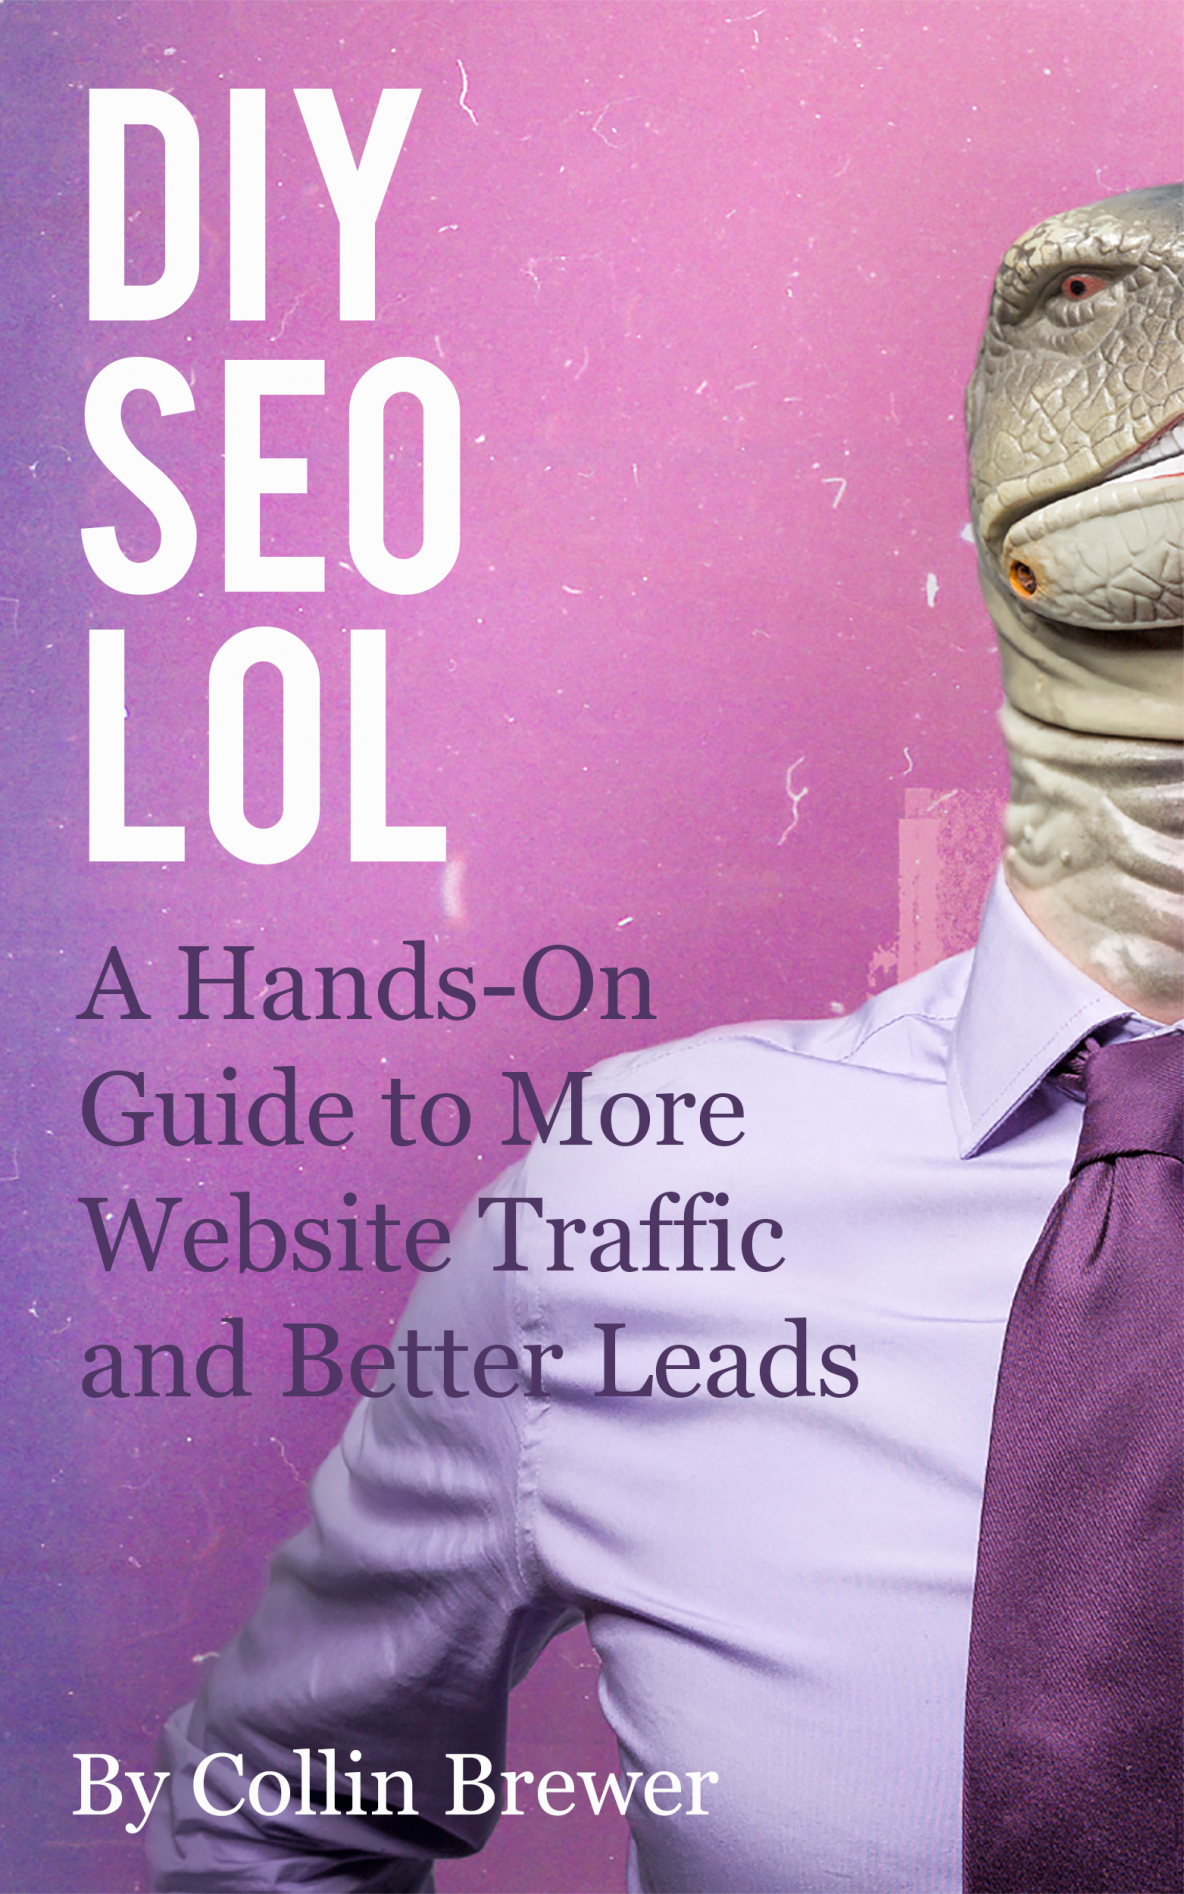 DIY SEO LOL Marketing eBook